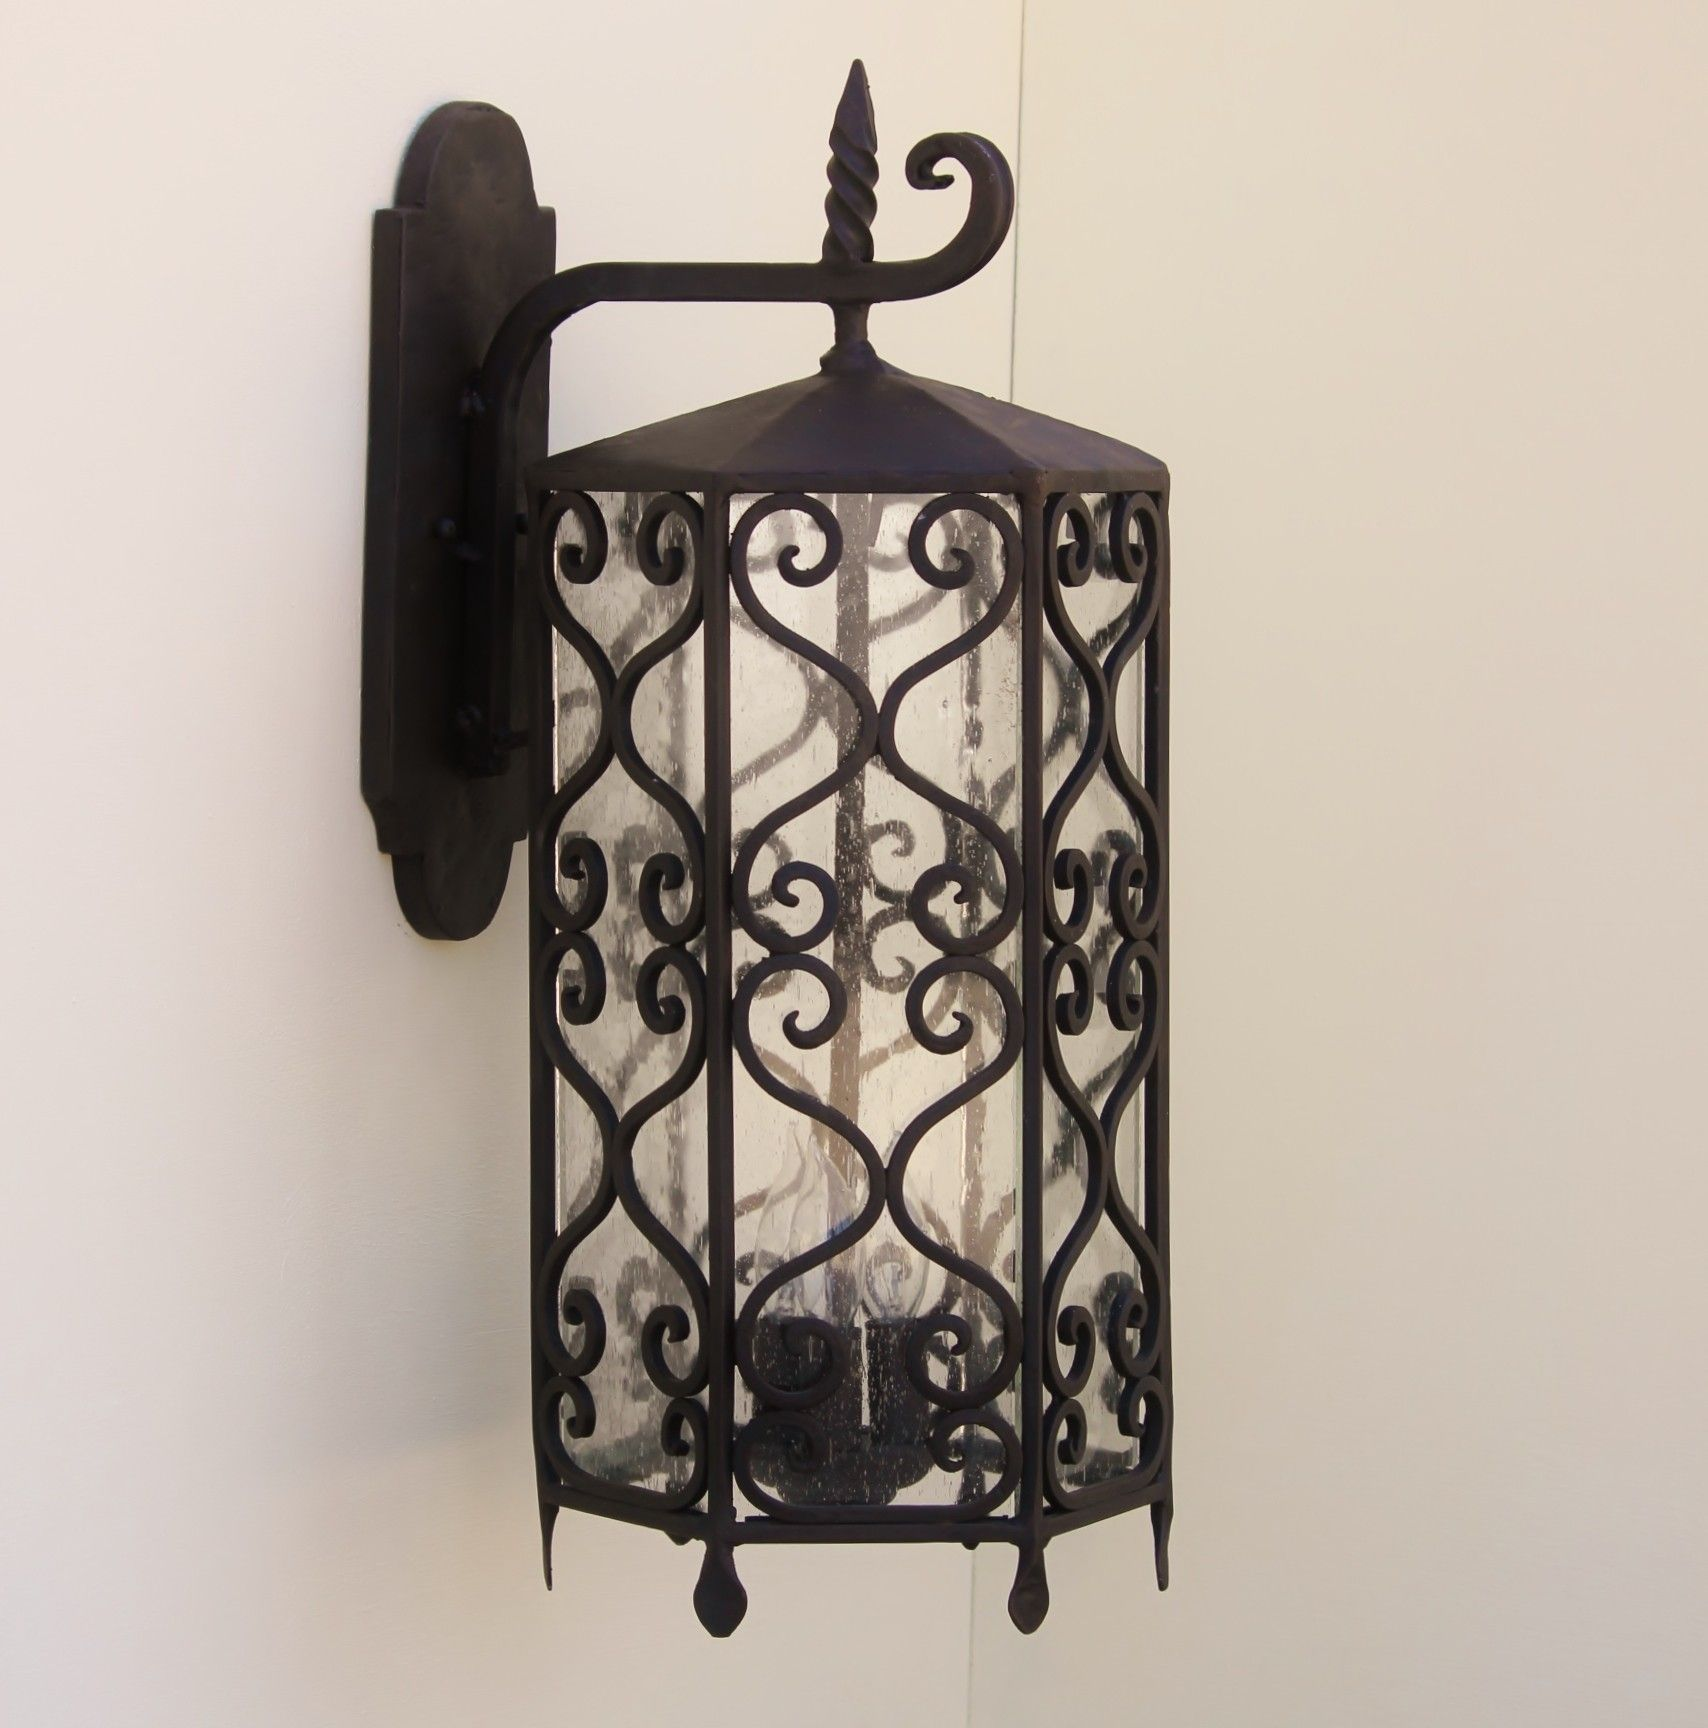 Spanish revival outdoor lighting fixturer wrought iron spanish revival outdoor lighting fixturer wrought iron aloadofball Images